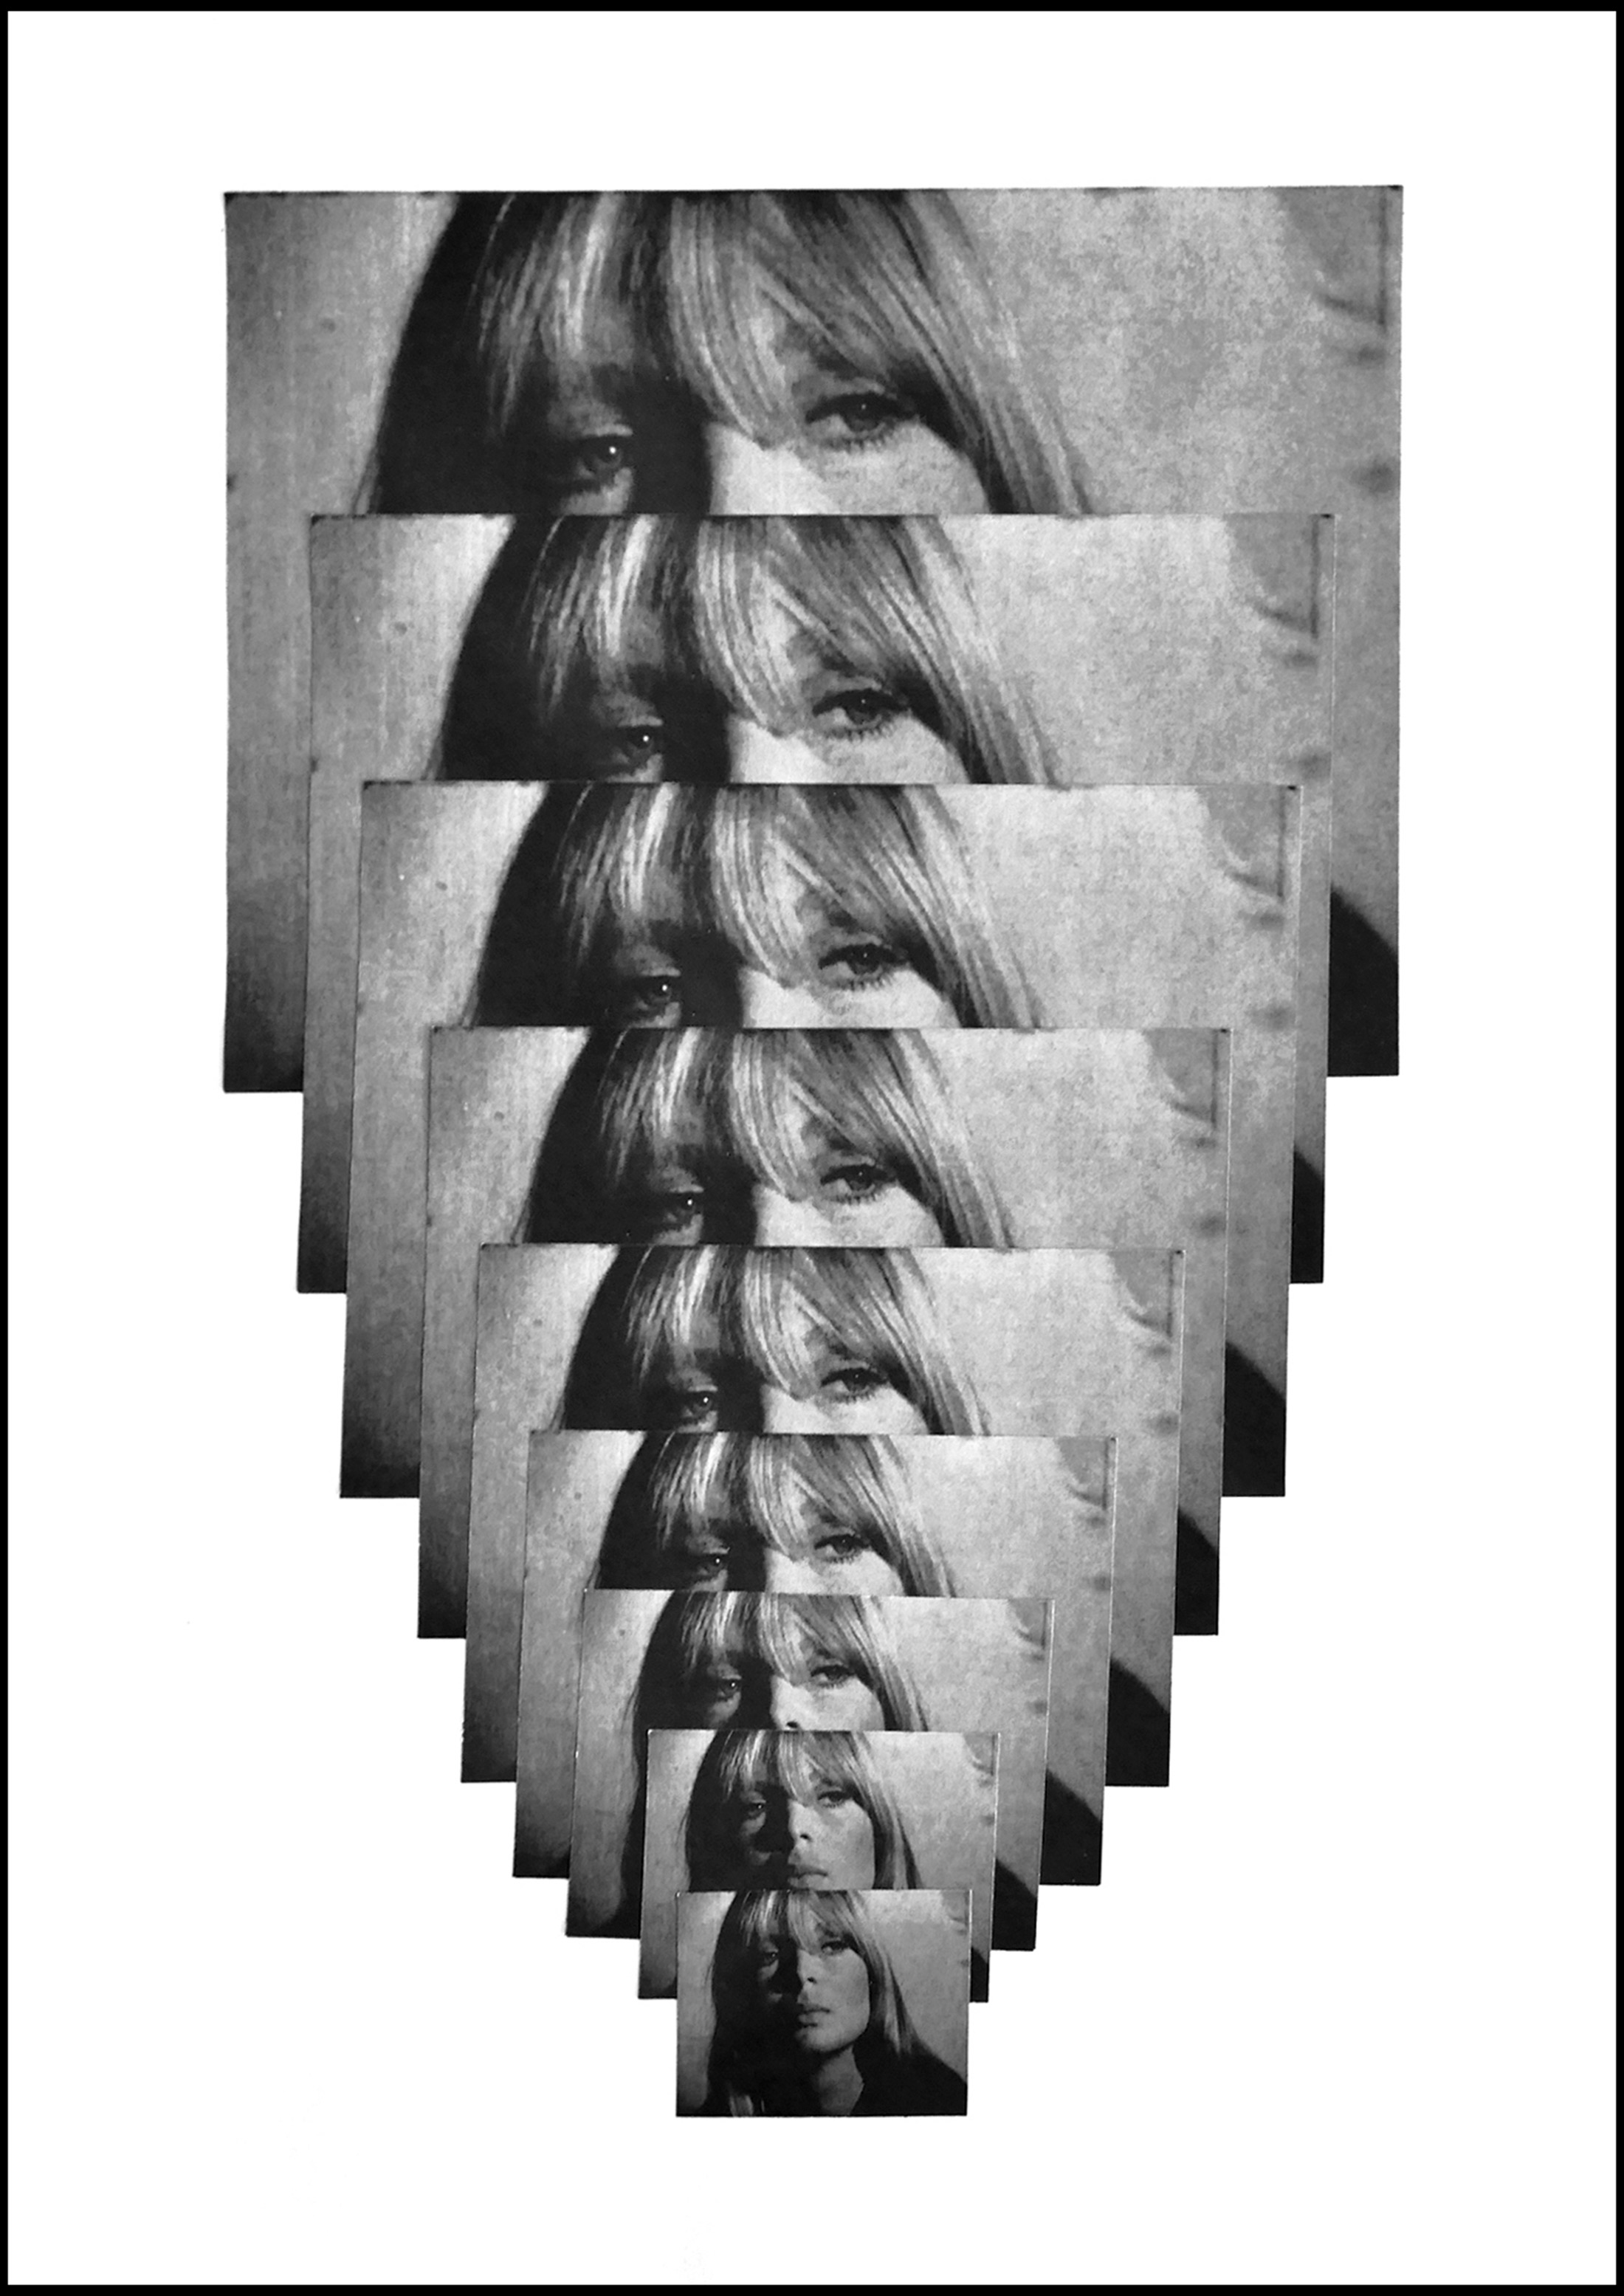 karin fisslthaler, contemporary female artist, collage, cut-out, black and white, photocopies